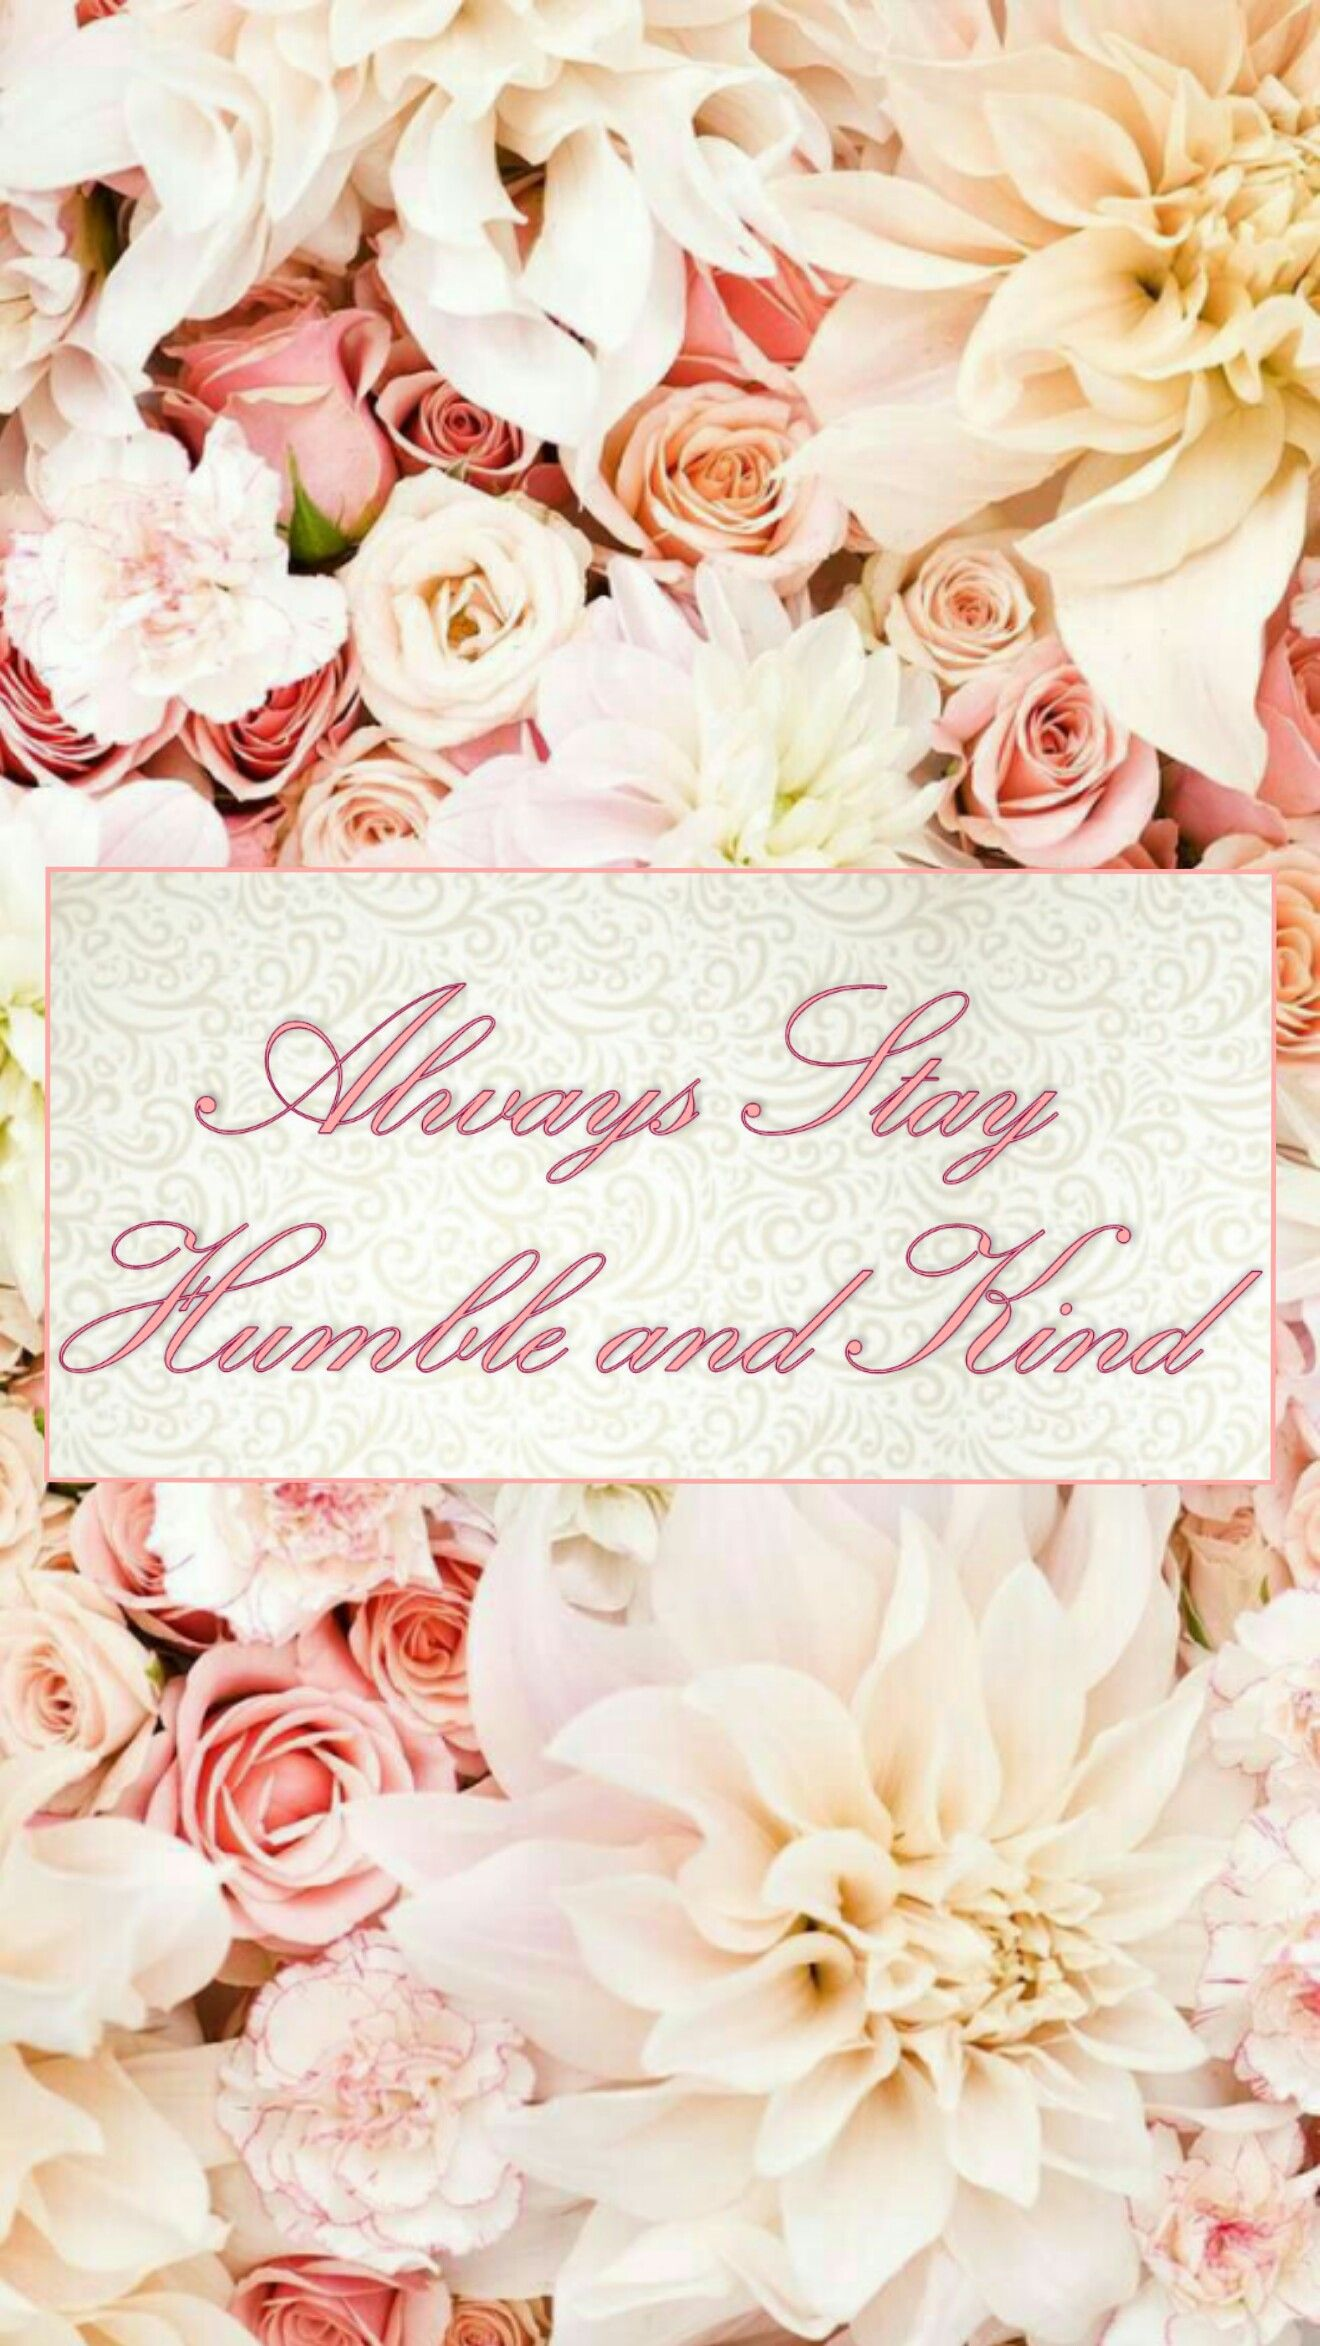 Stay humble and kind phone backgrounds fondos de - Stay humble wallpaper ...